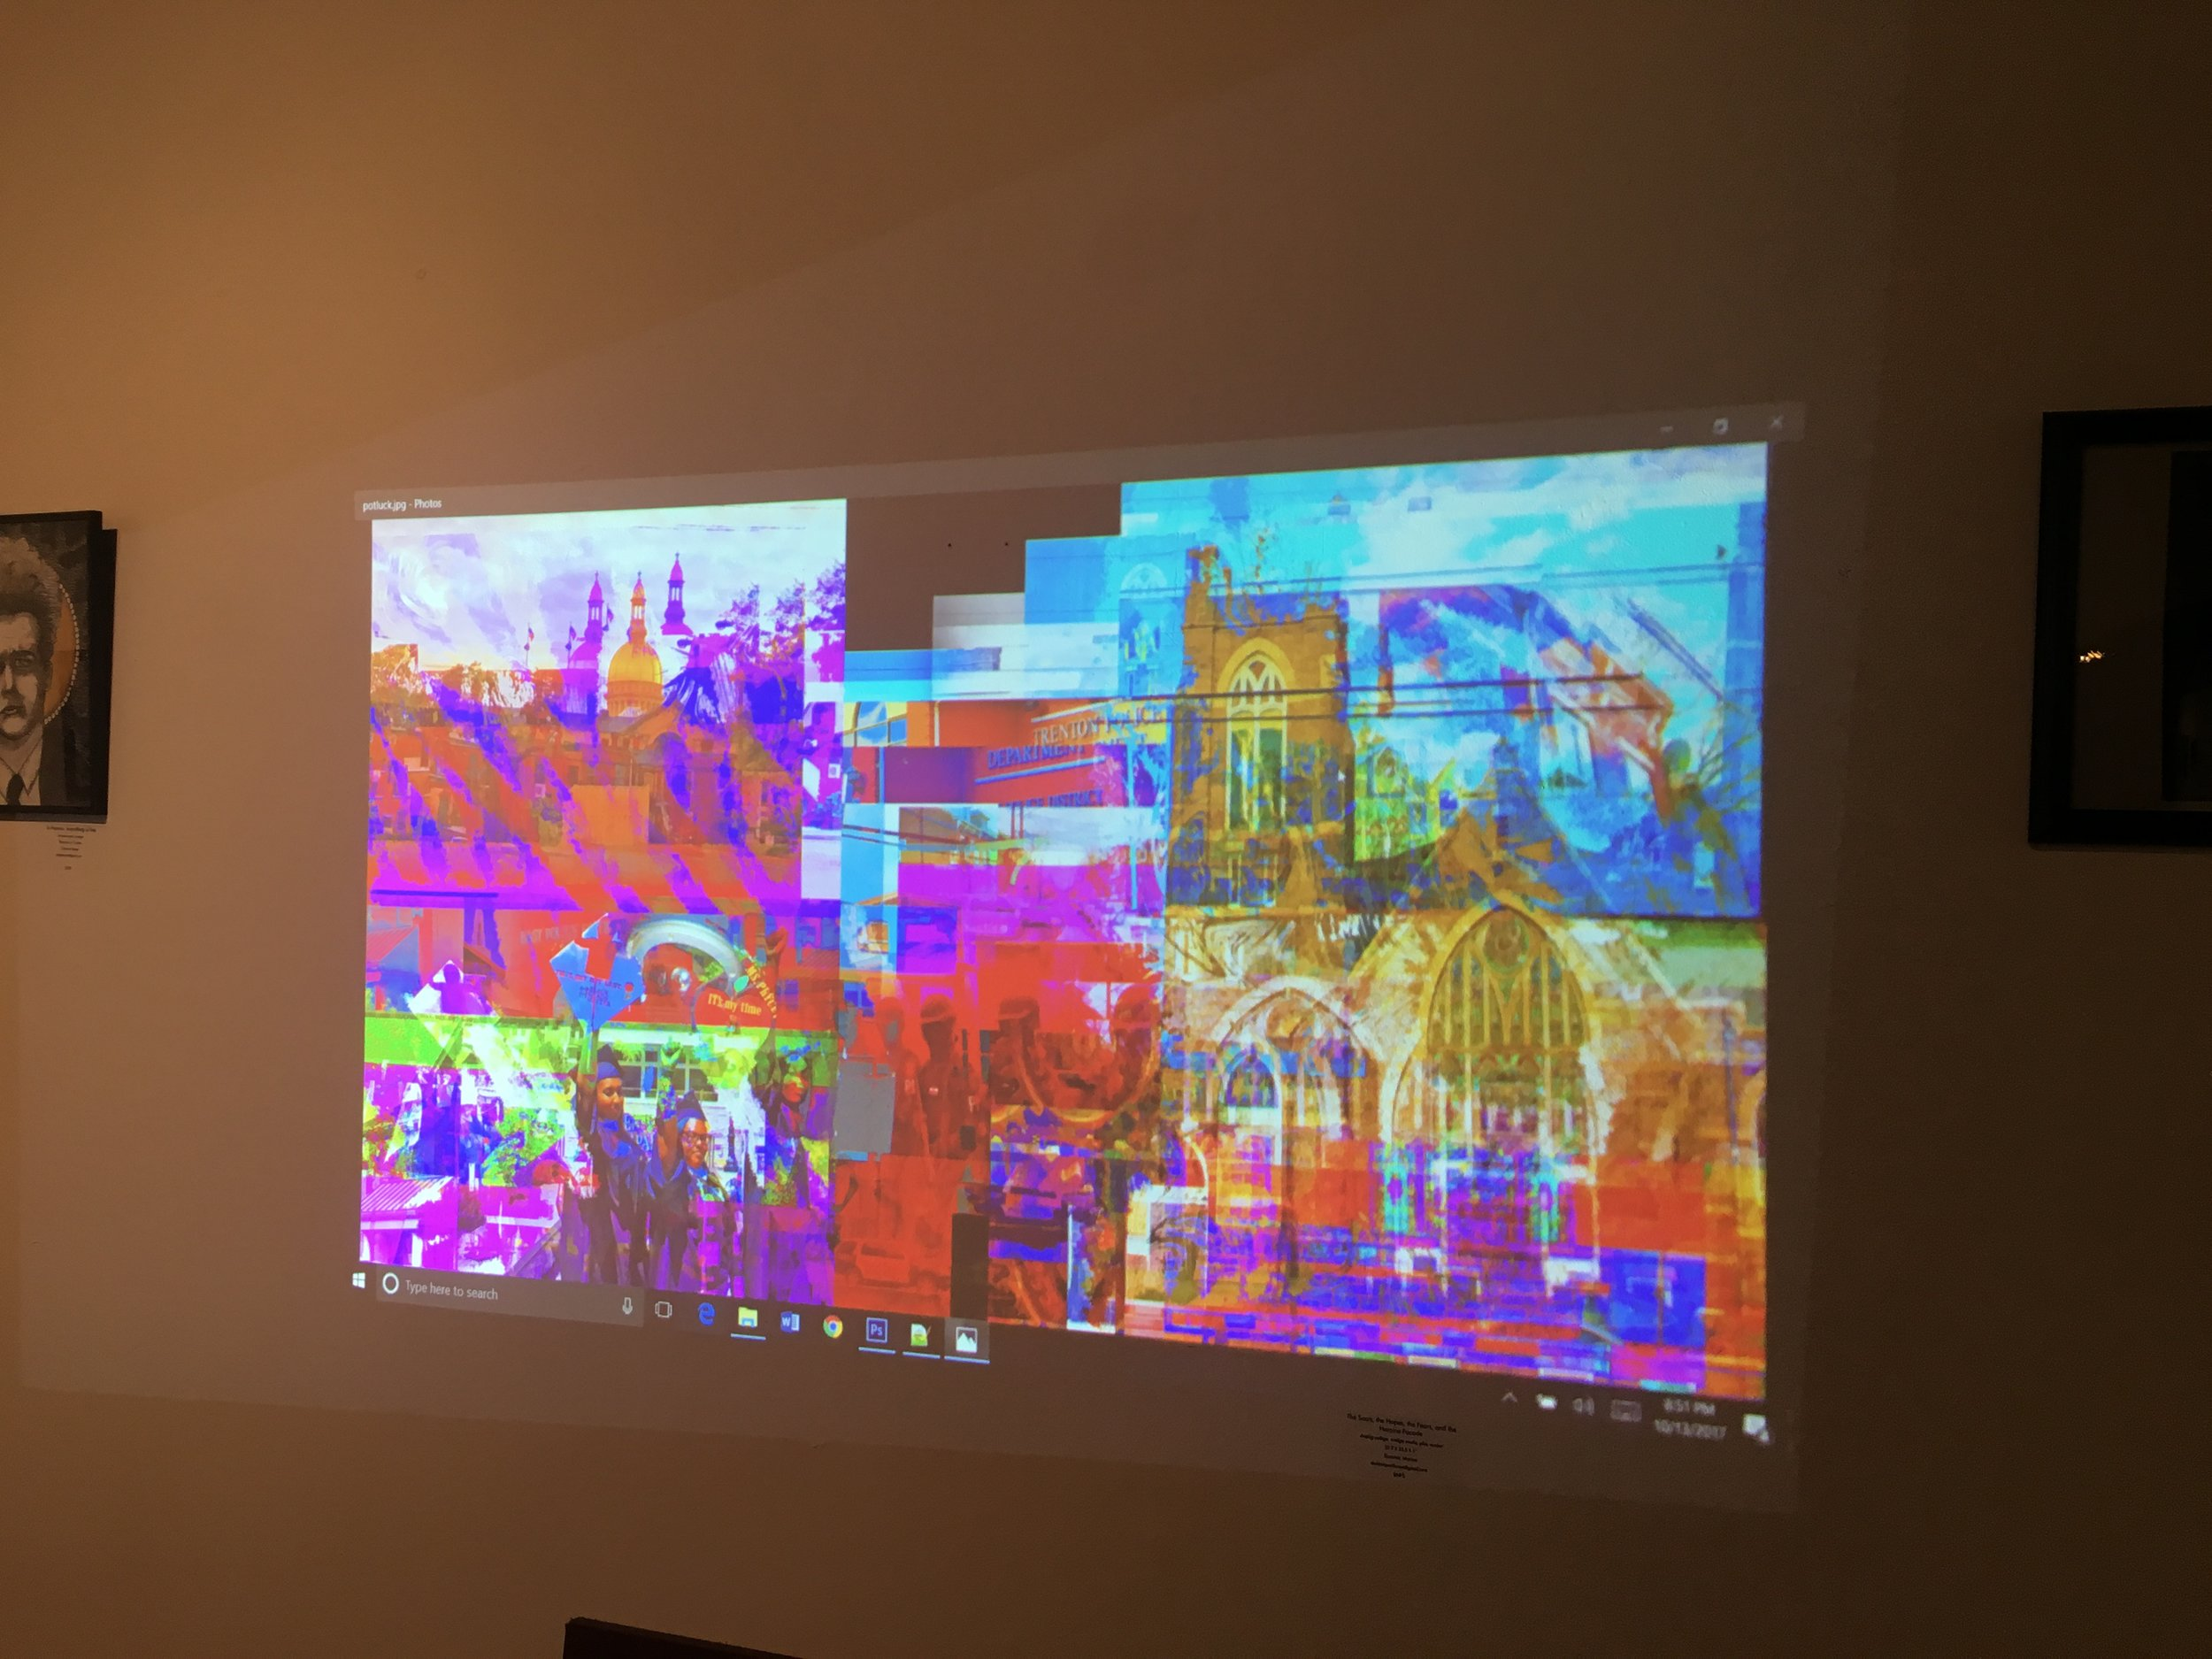 The final version of Phillip McConnell's digital art created in response to the conversation at Artworks.